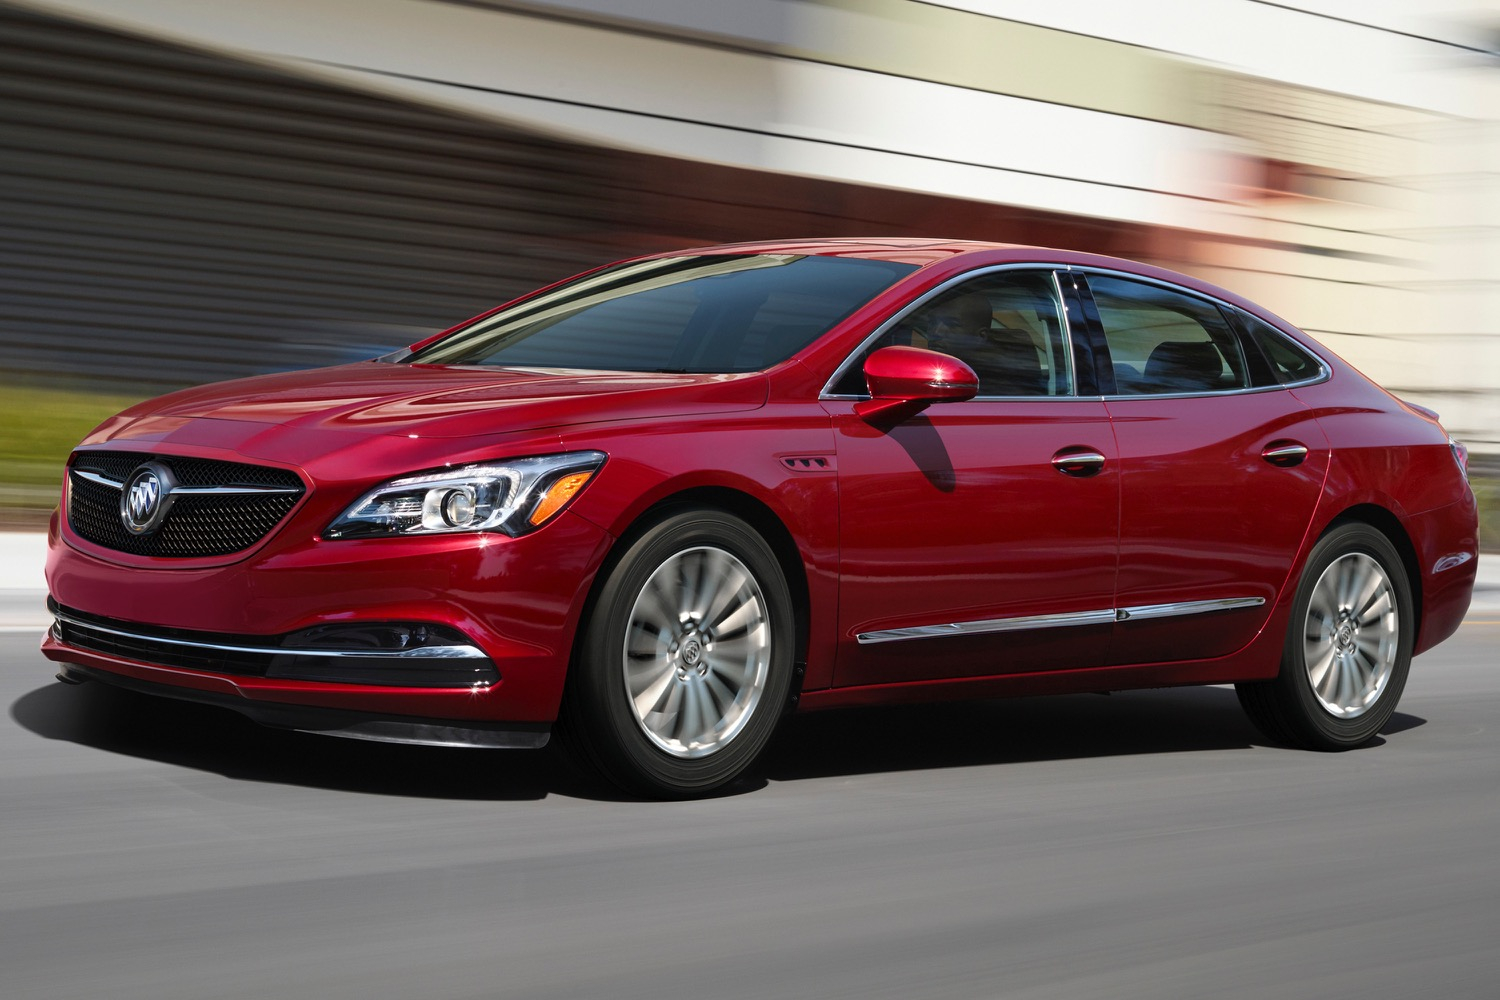 Buick Lacrosse Discount Totals $9,000 February 2020 | Gm New 2022 Buick Lacrosse Cost, Awd, Build And Price